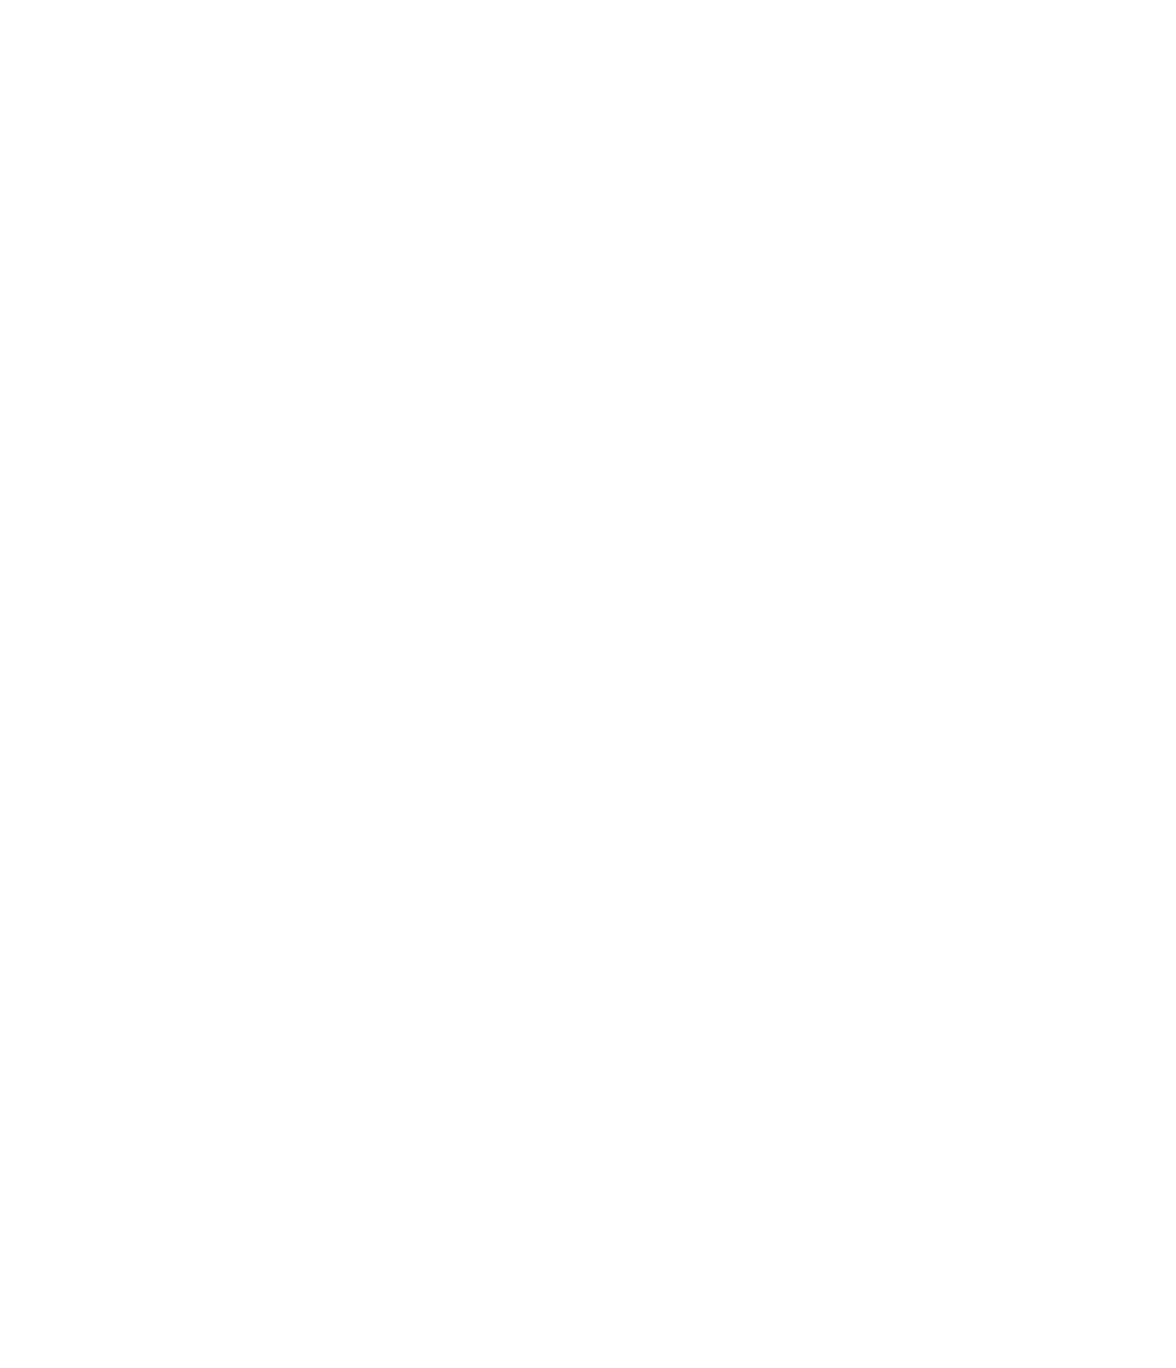 Marine View Presbyterian Church